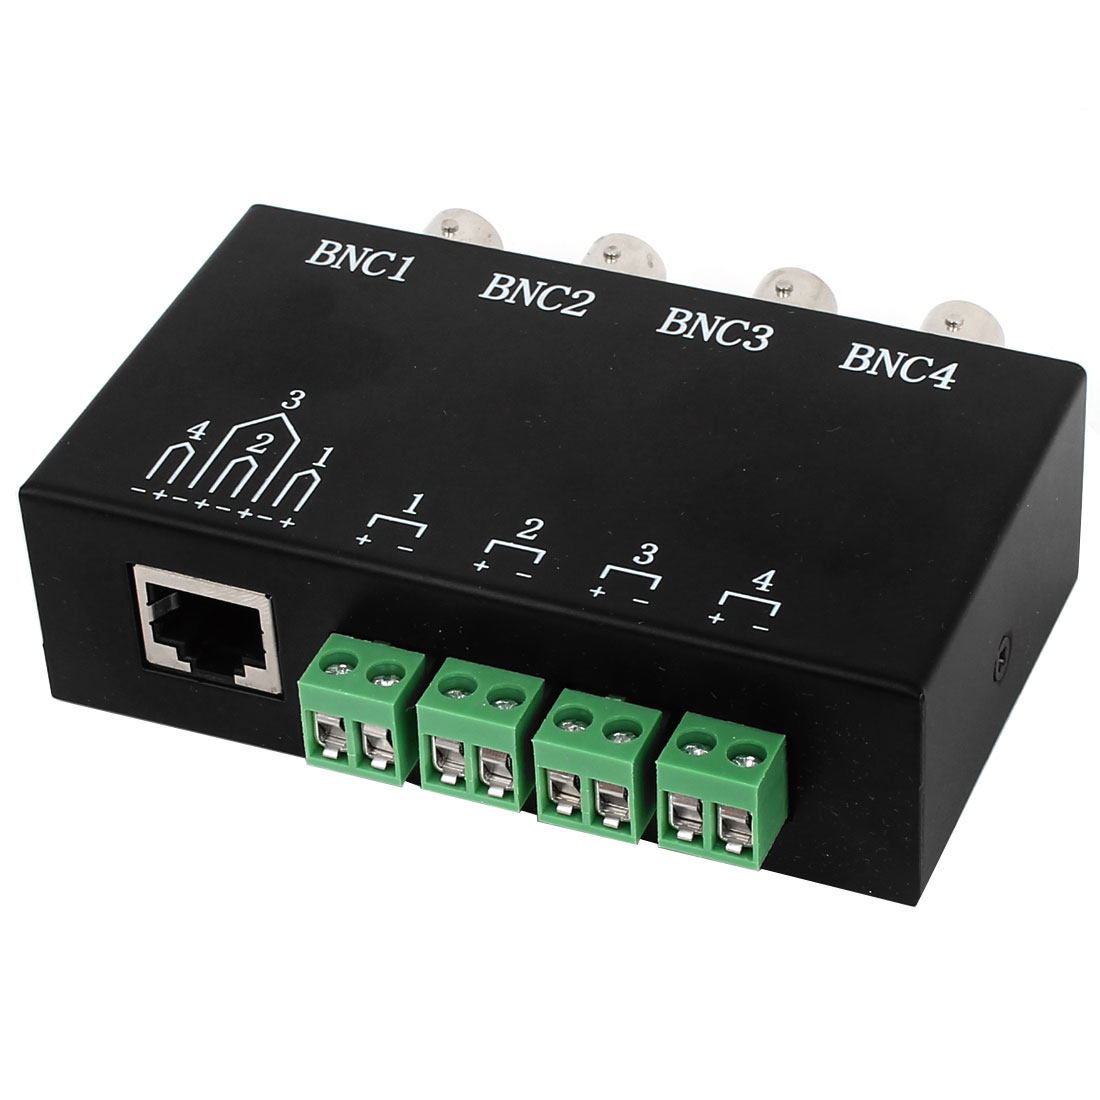 CCTV Camera DVR 4 Channel BNC to UTP RJ45 Video Balun Passive Transceiver